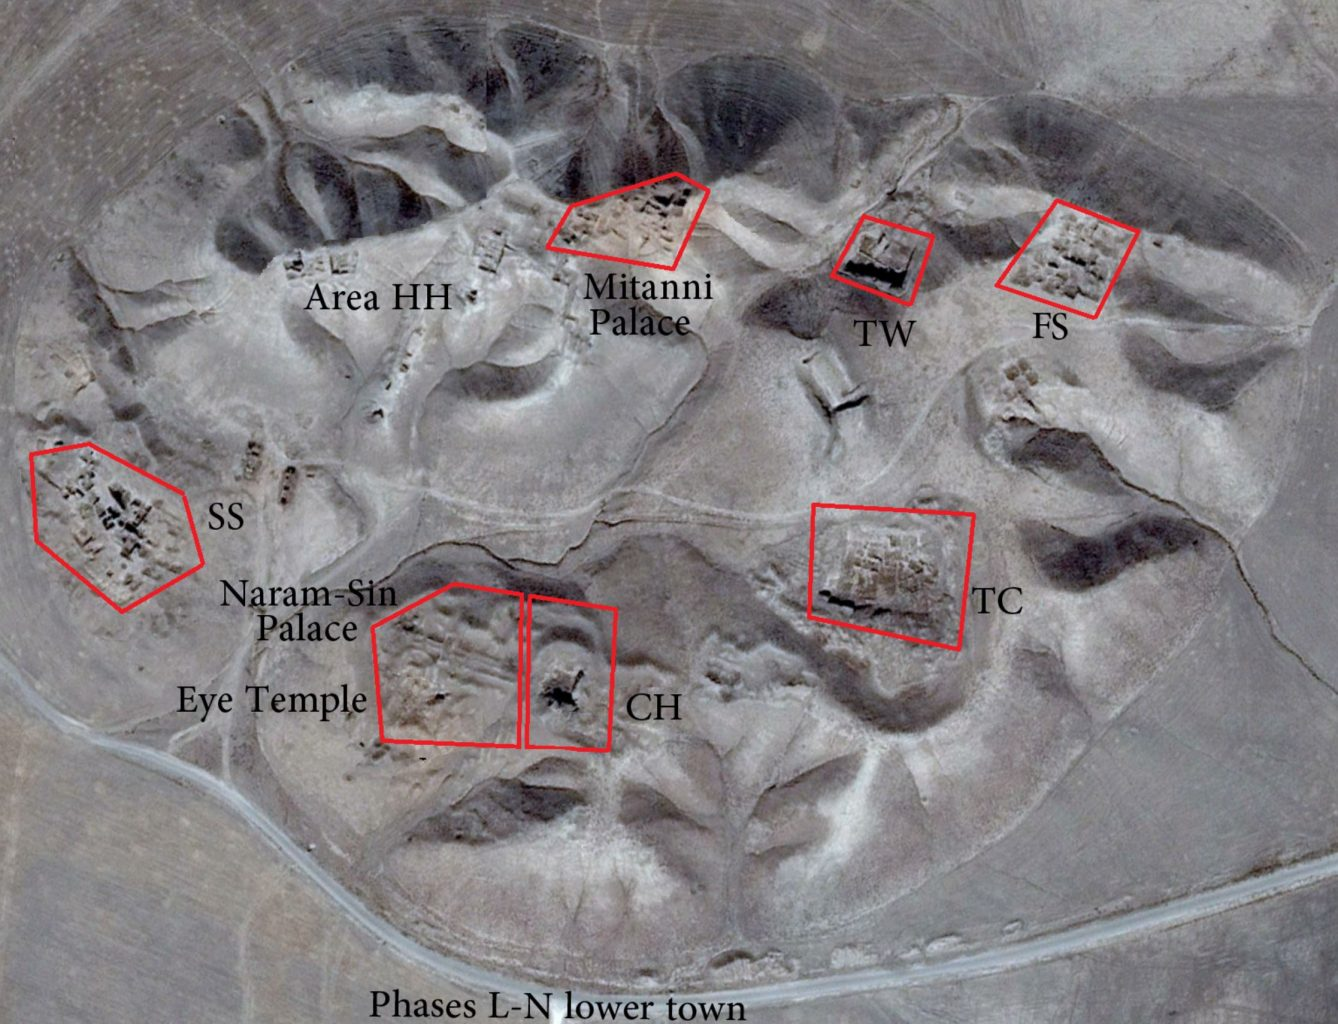 An aerial image showing the landmarks of Tell Brak. Image Credit: Wikimedia Commons / CC BY-SA 4.0.